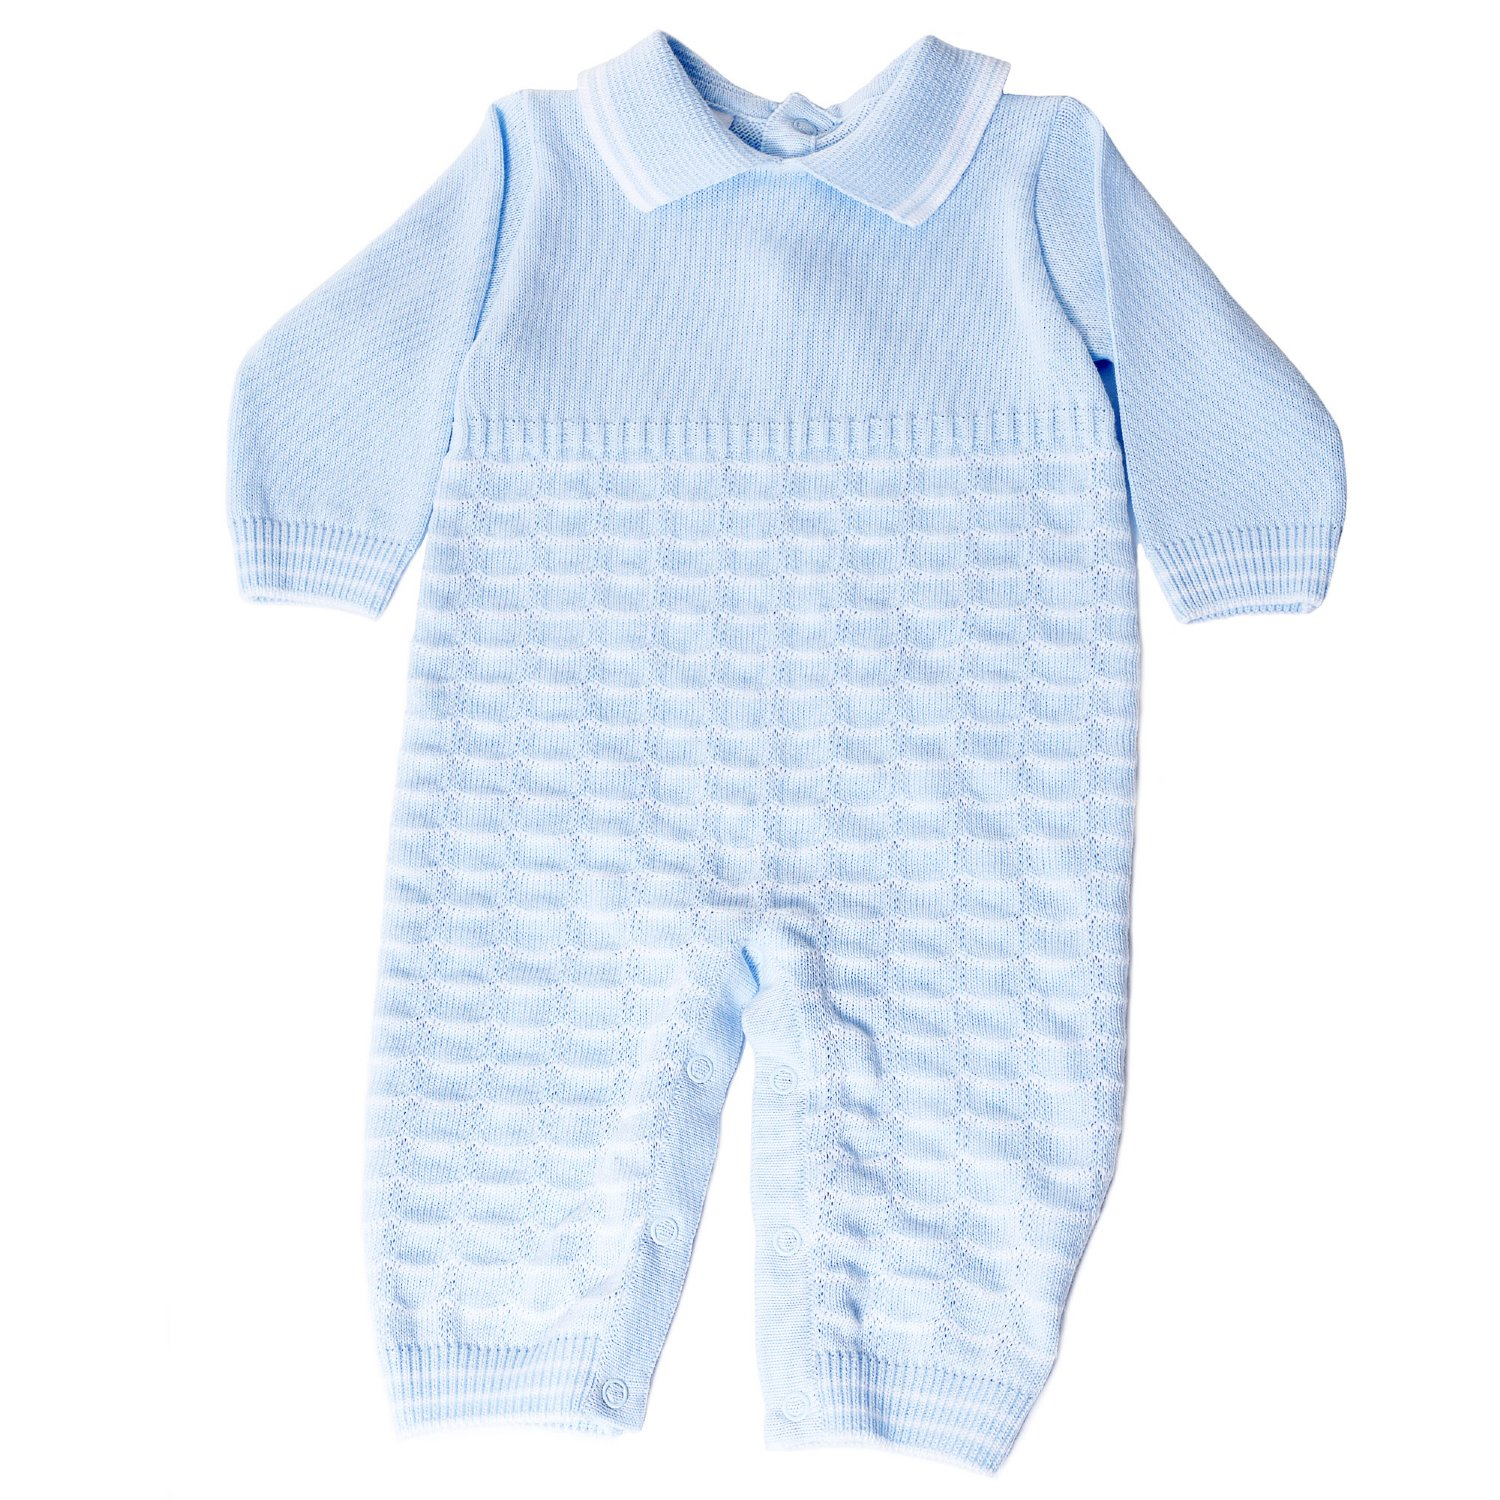 aa54f06d9 Dolce Goccia Blue and White Noah Knit Romper for Baby Boys